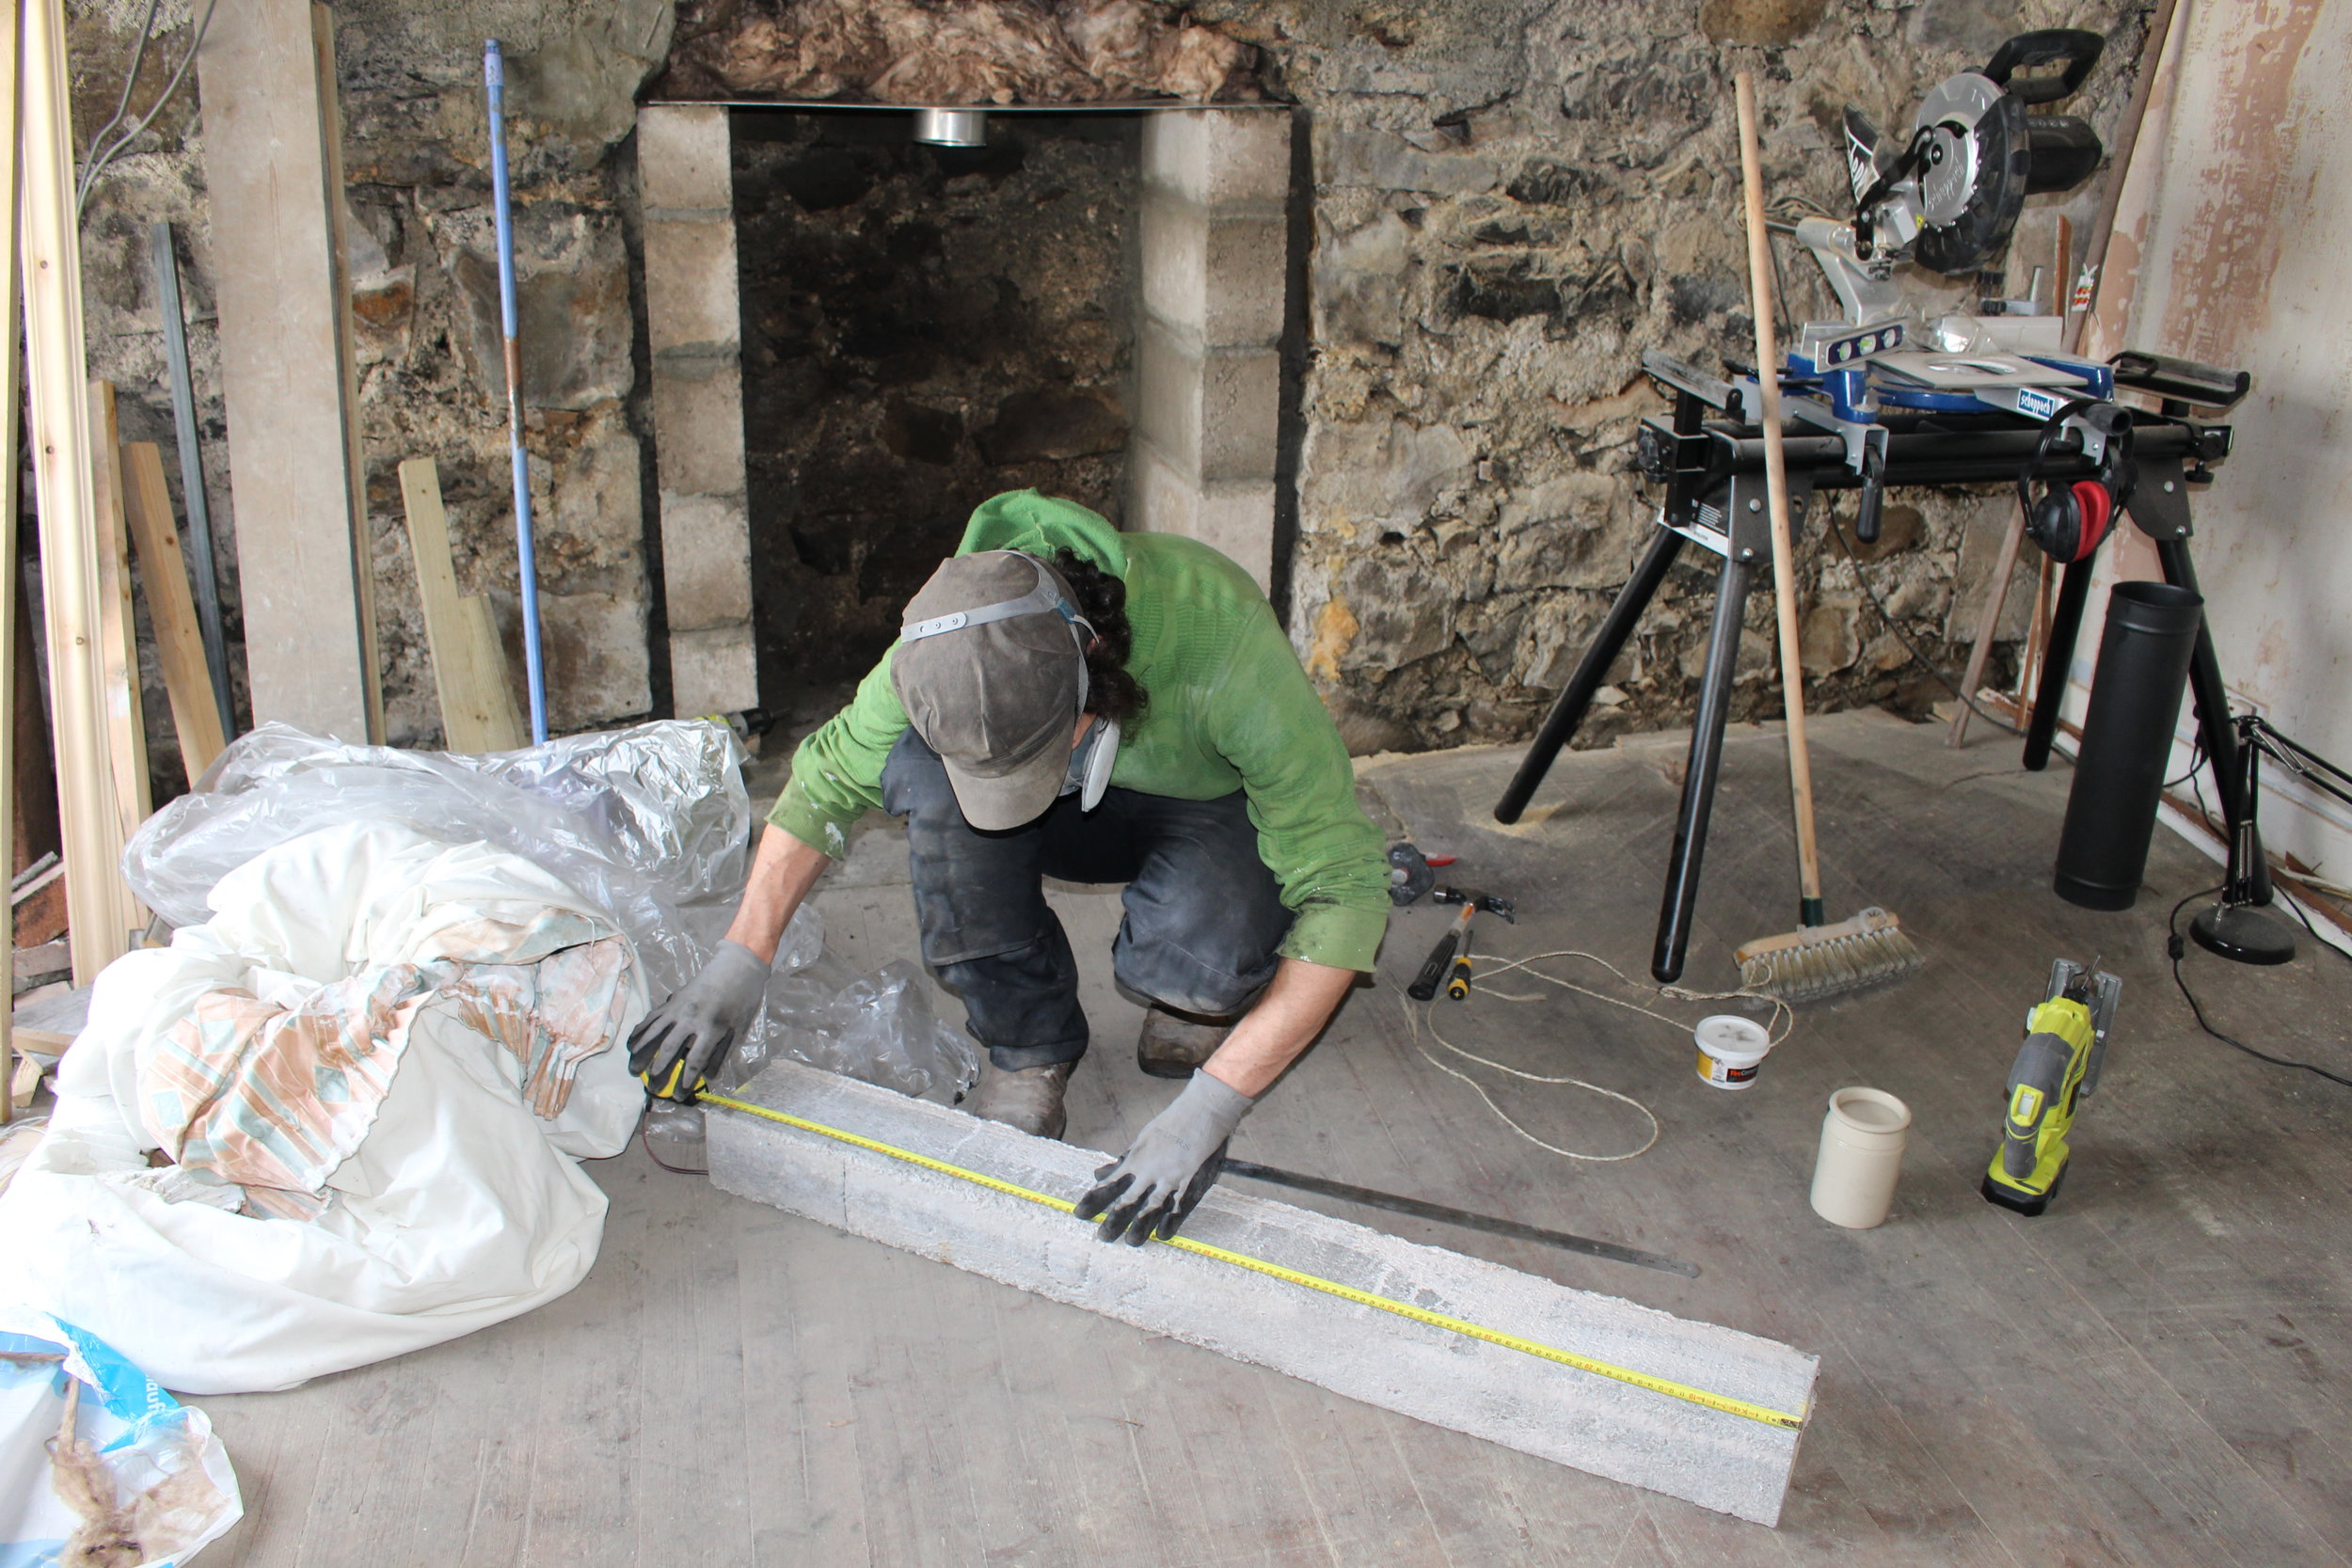 With the insulation in place, the last thing to fit before the vermiculate back-fill, was the concrete lintel. This had to be measured and cut - including the steel reinforcing rods which commanded quite a bit of effort!